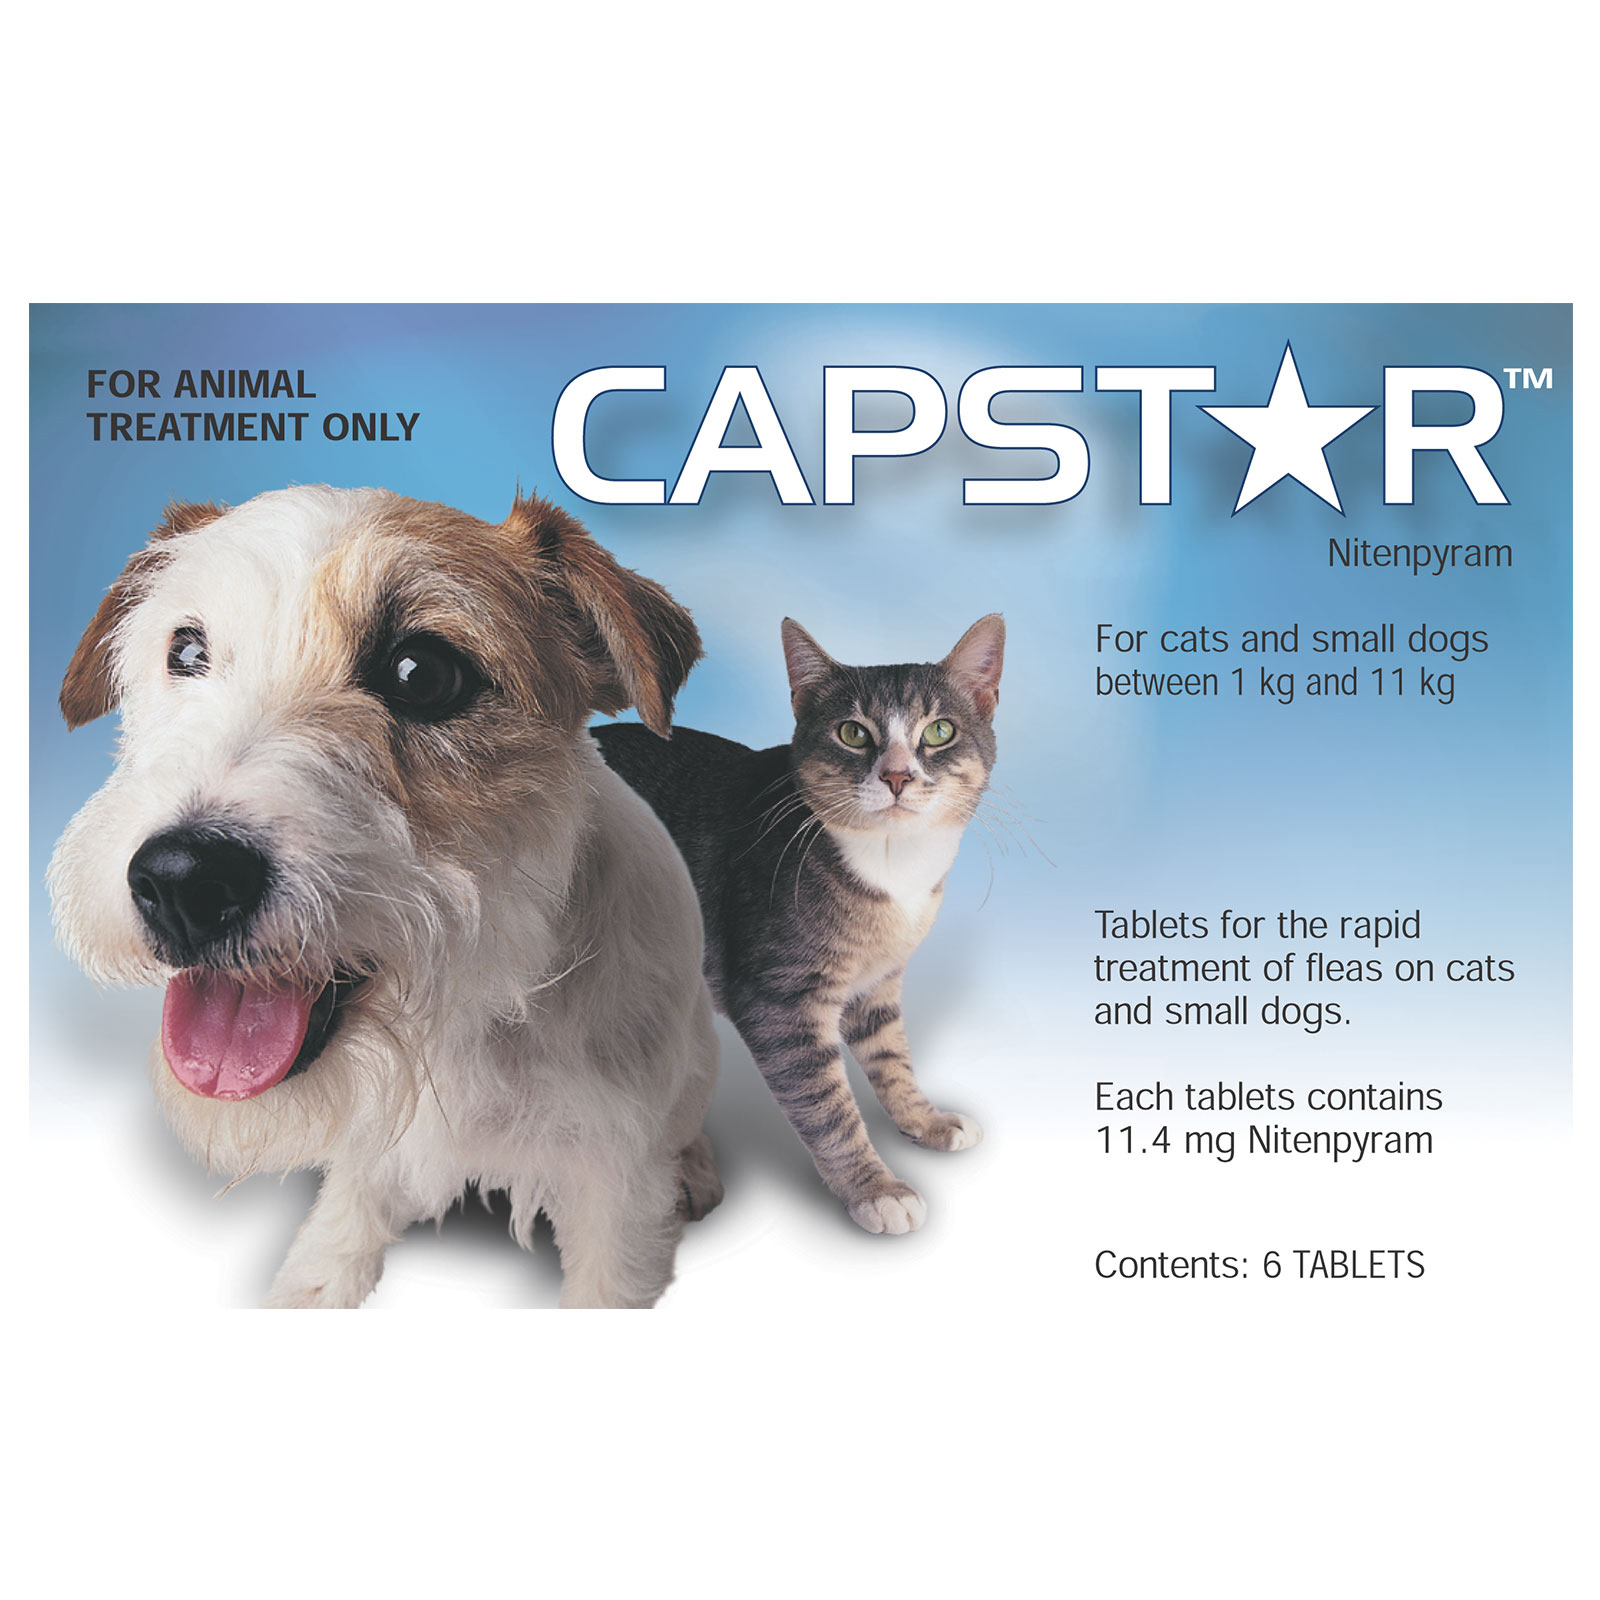 Capstar Flea Control Tablets for Cats